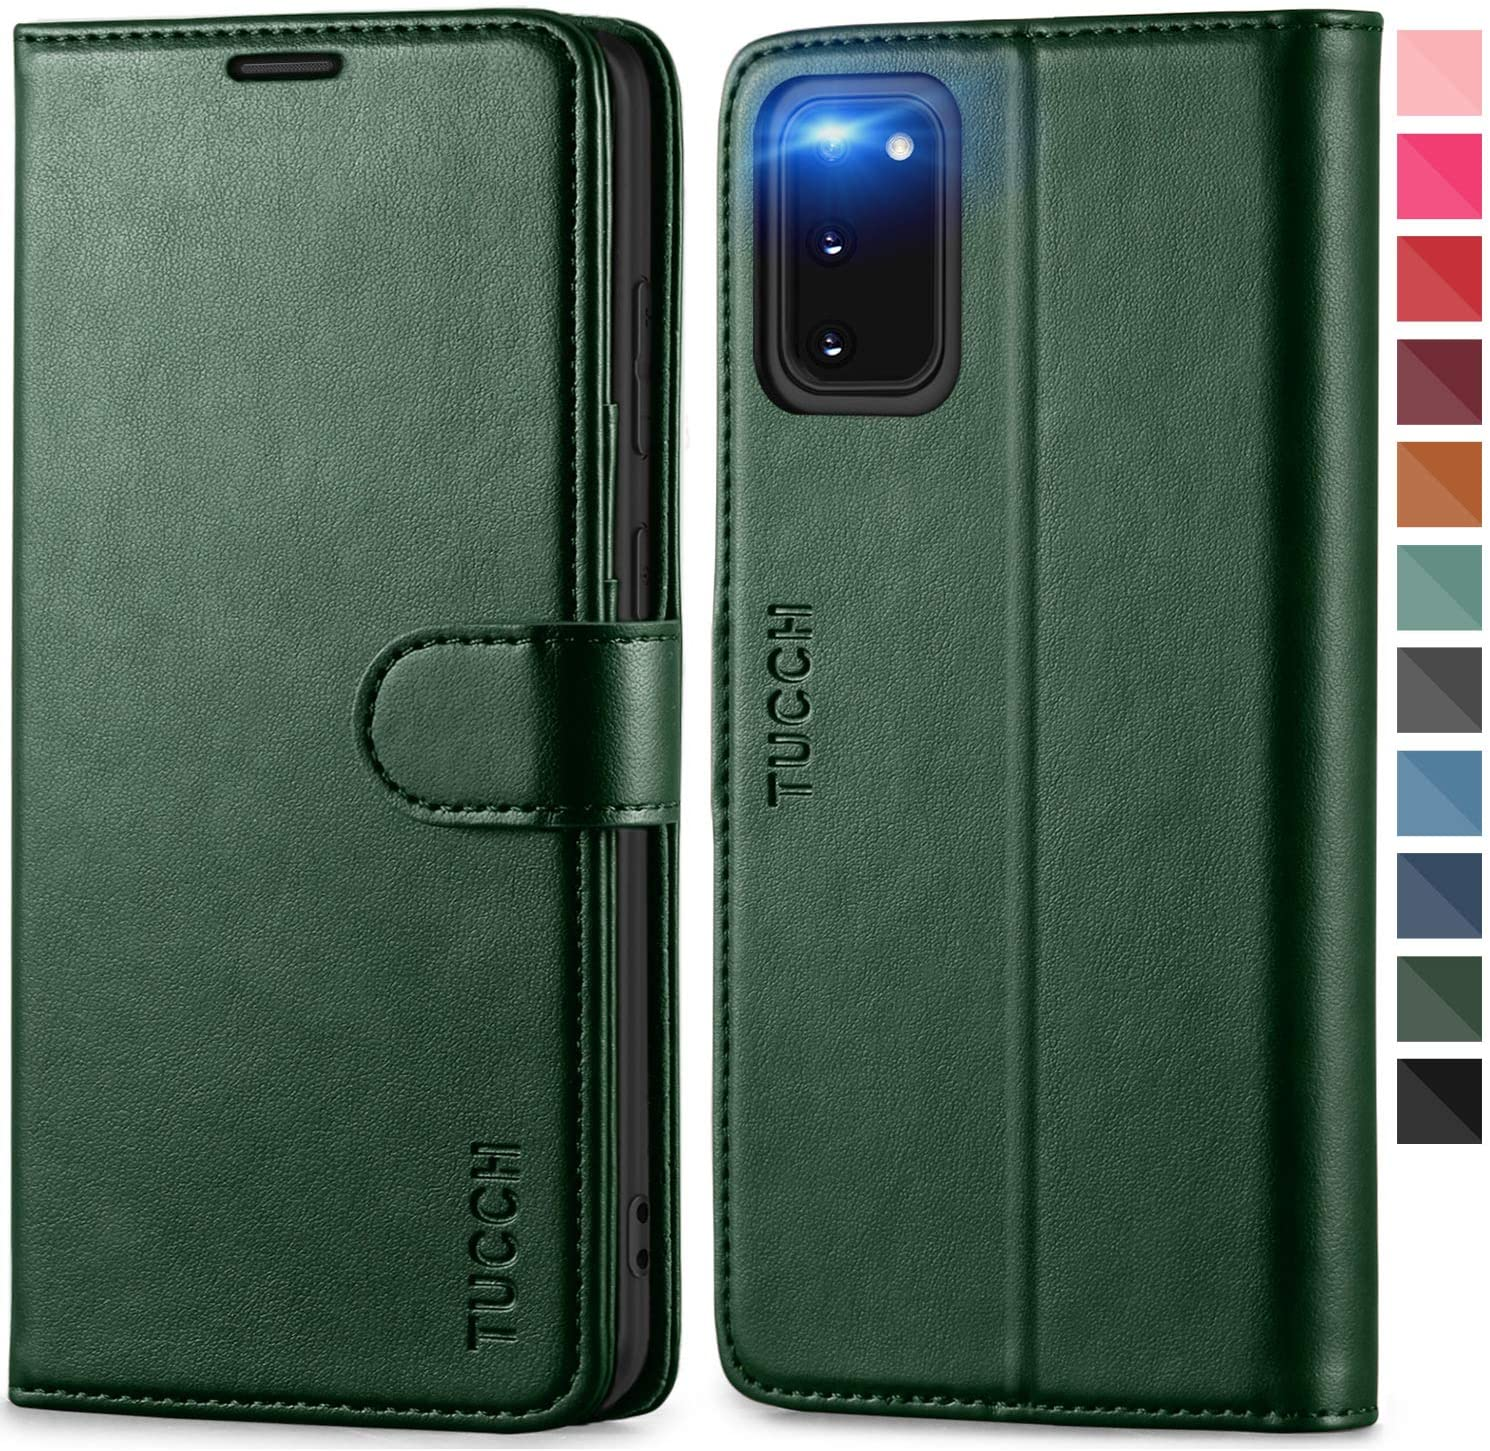 TUCCH Galaxy S20 Wallet Case with [TPU Shockproof Interior Case] Stand Folio RFID Credit Card Holder, Magnetic PU Leather Protective Flip Cover Compatible with Samsung Galaxy S20 6.2 -Midnight Green